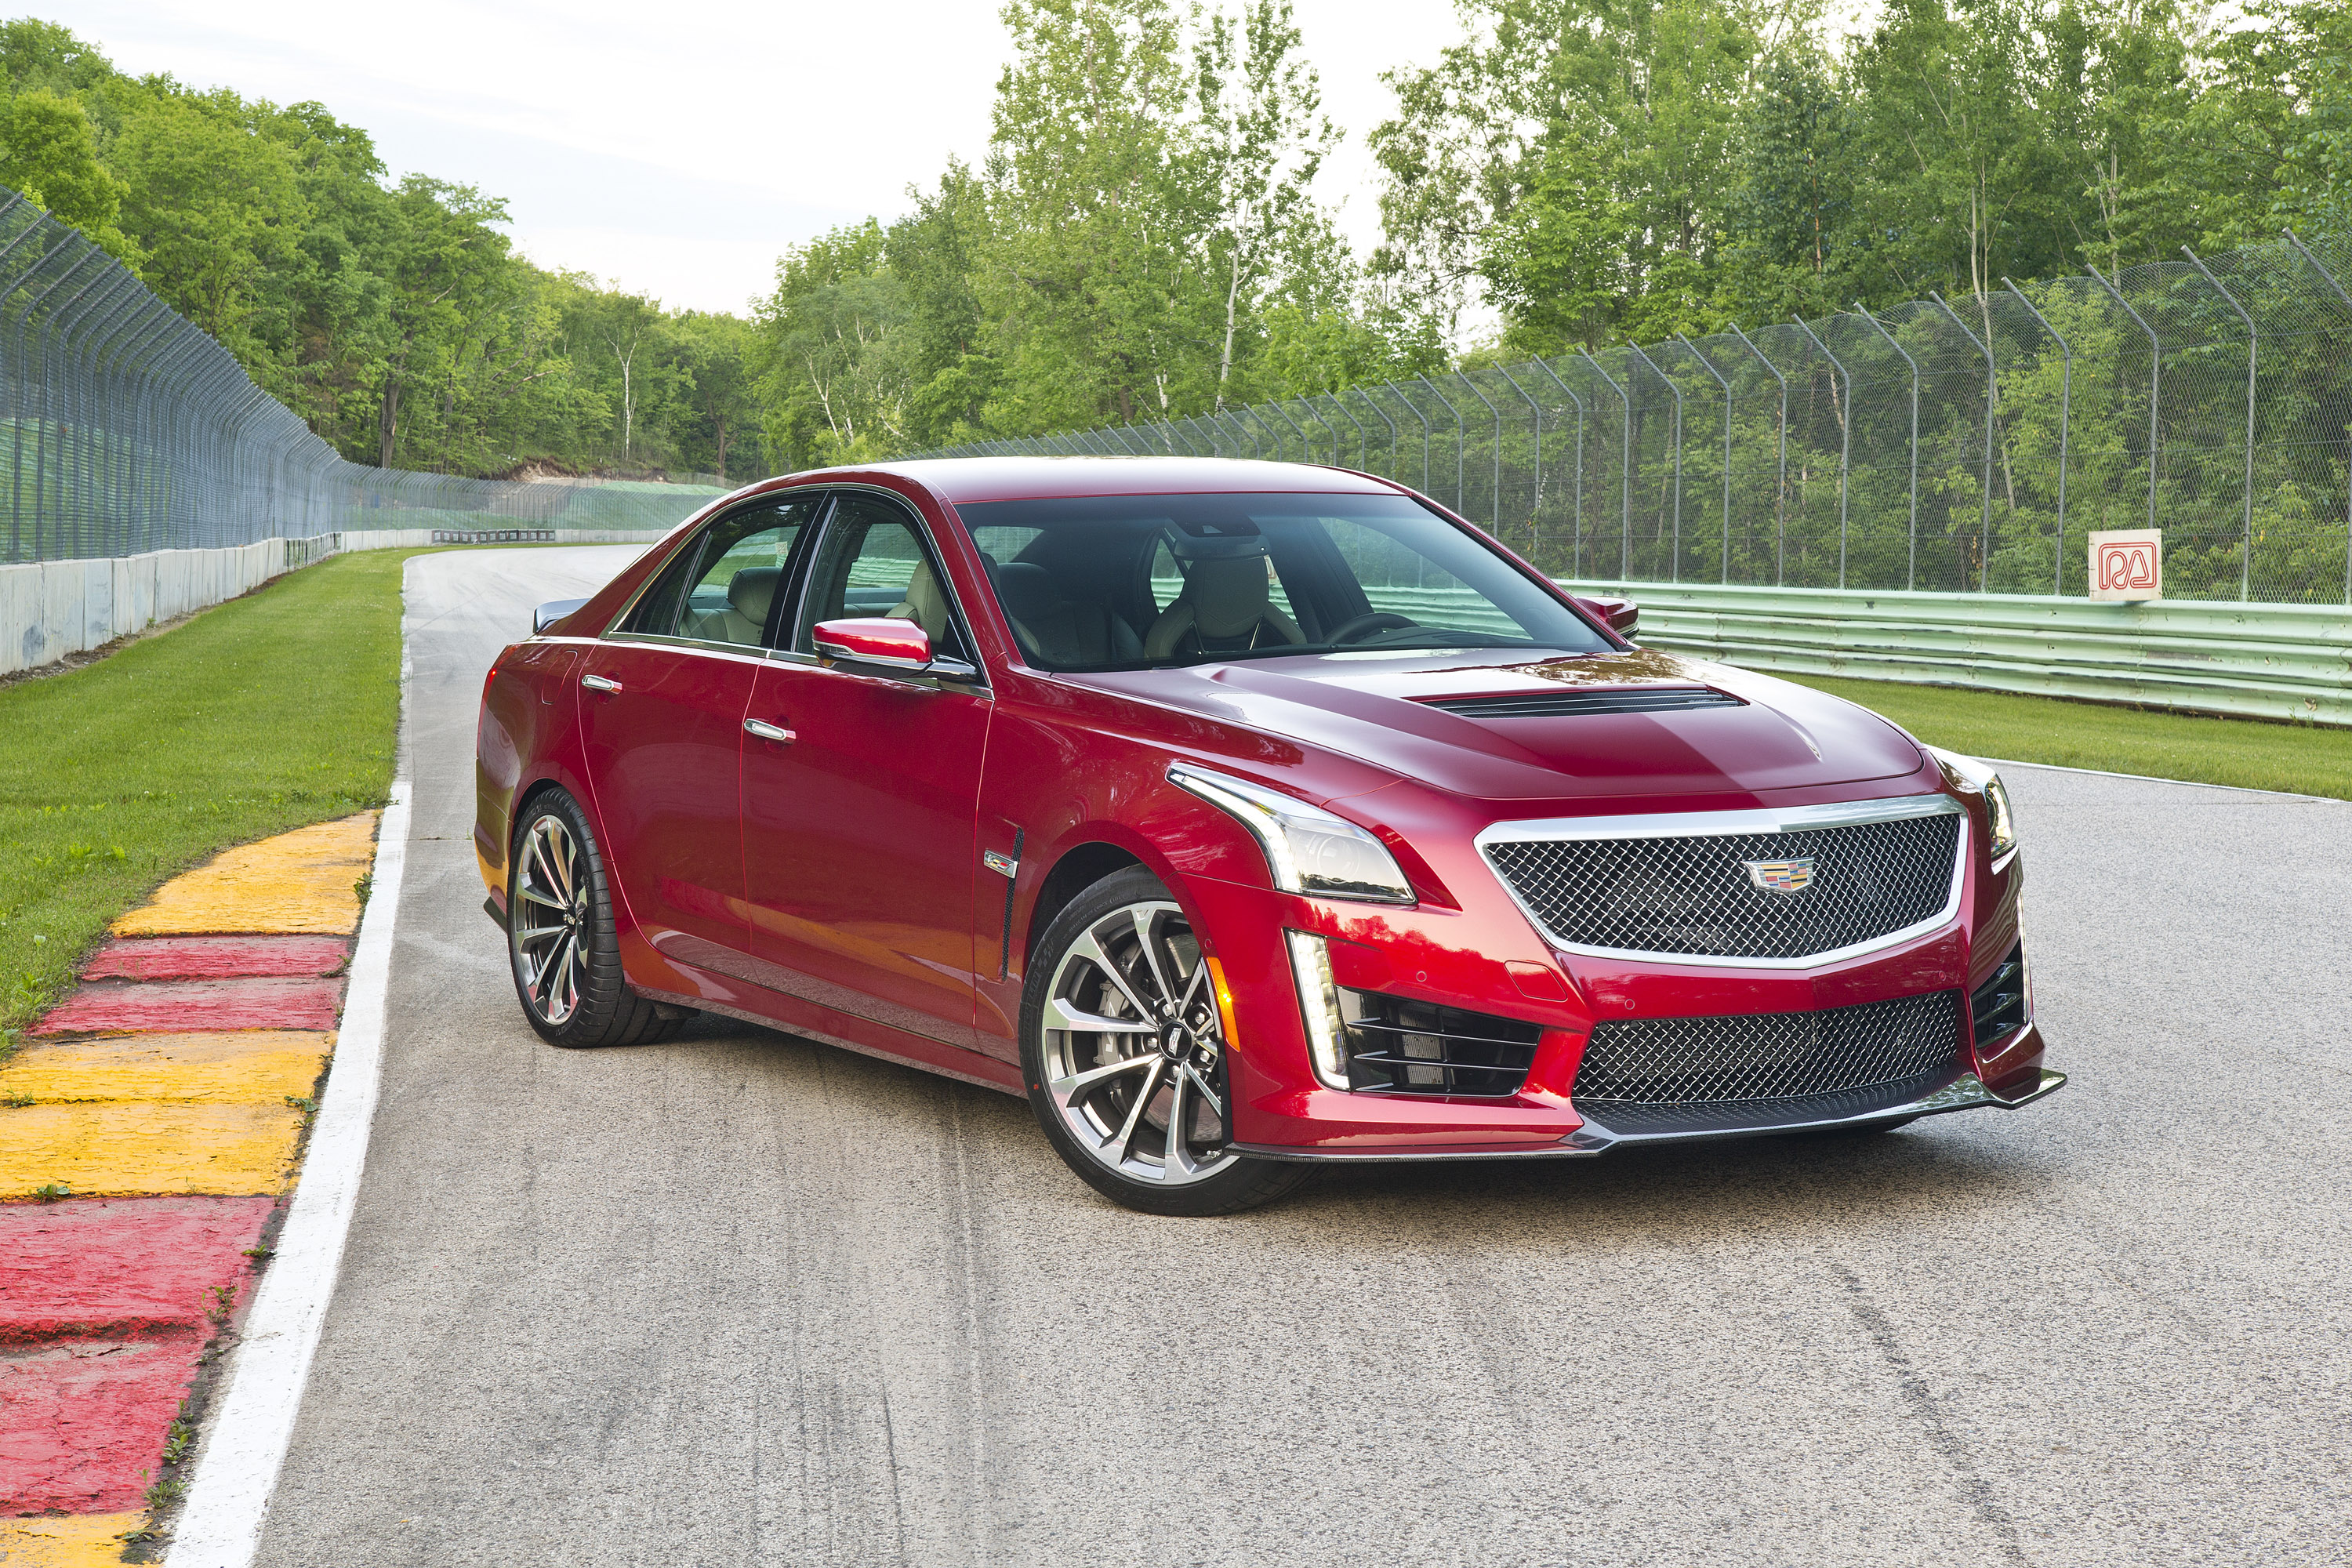 Cadillac-CadillacCTS-Cars-SuperSalon-Beast-LoveCars-RaceDay-Race-wallpaper-wpc58019